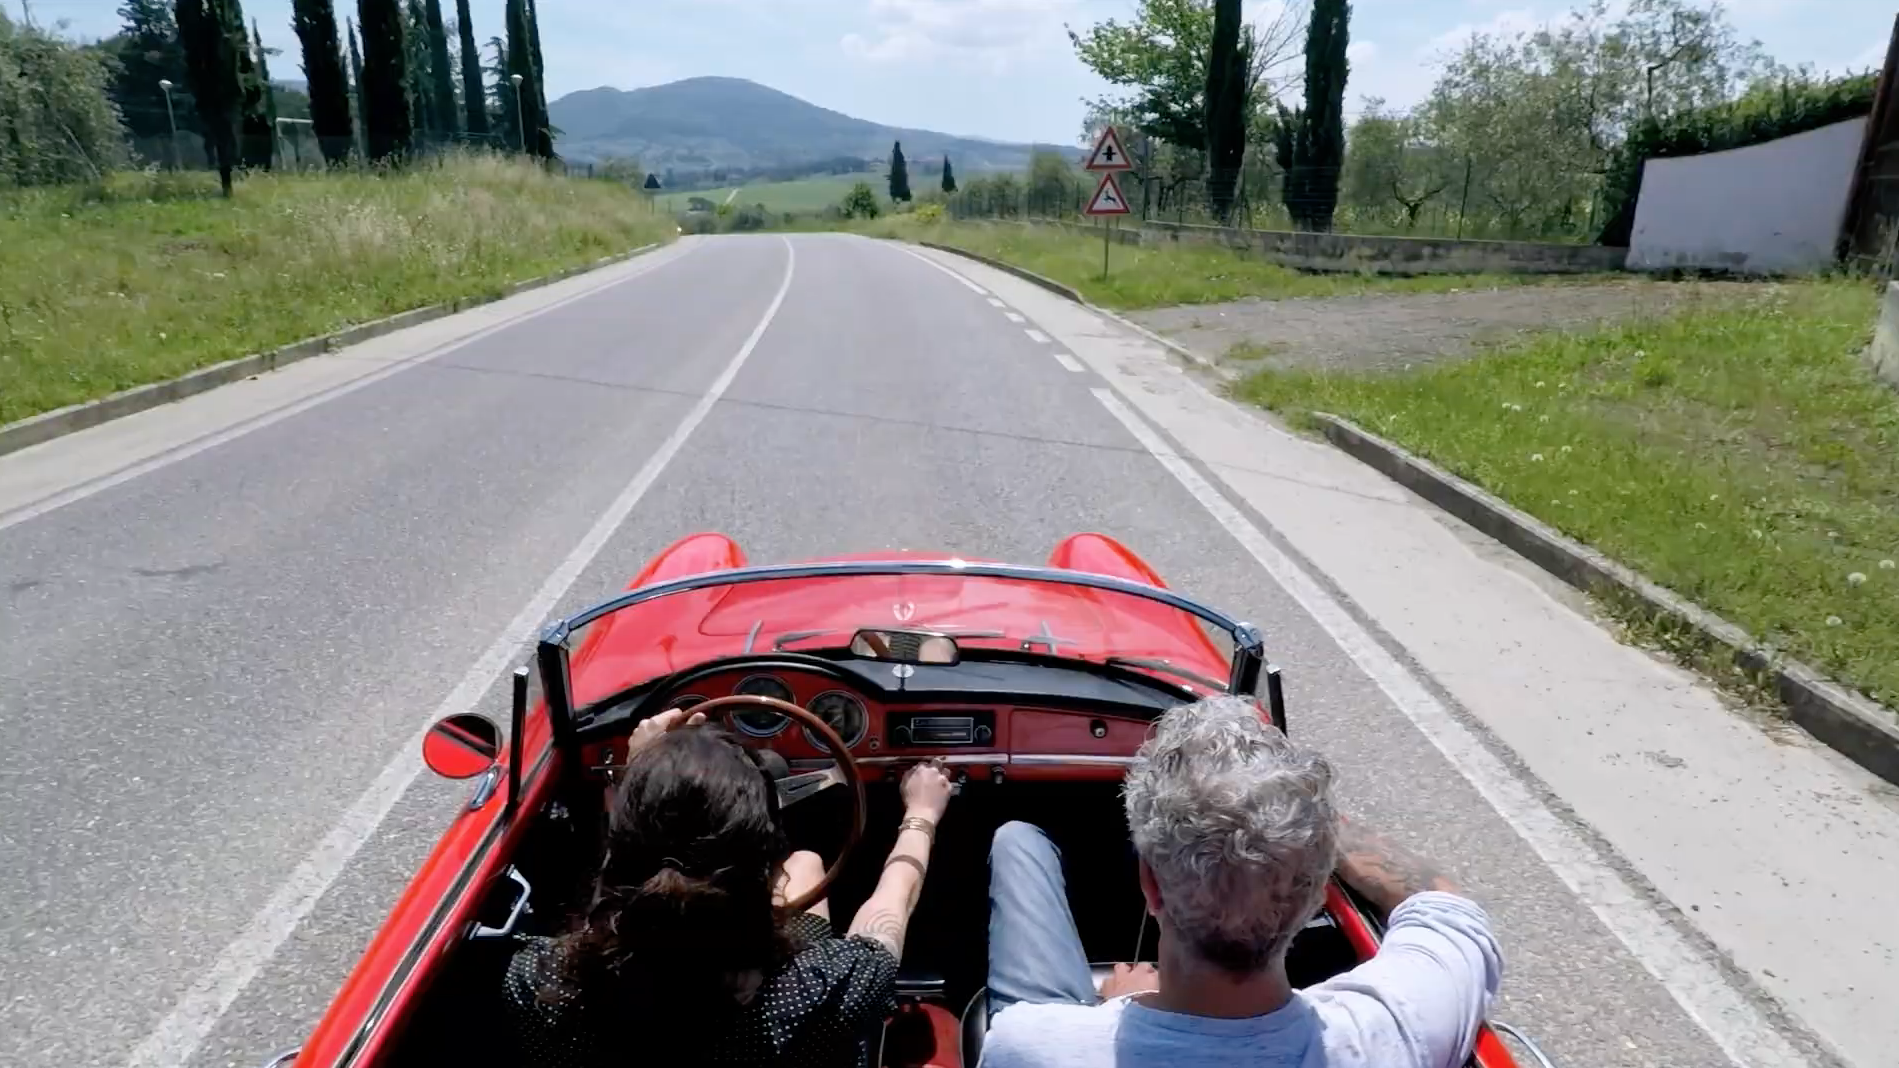 Bourdain riding in a red convertible sports car with Asia Argento